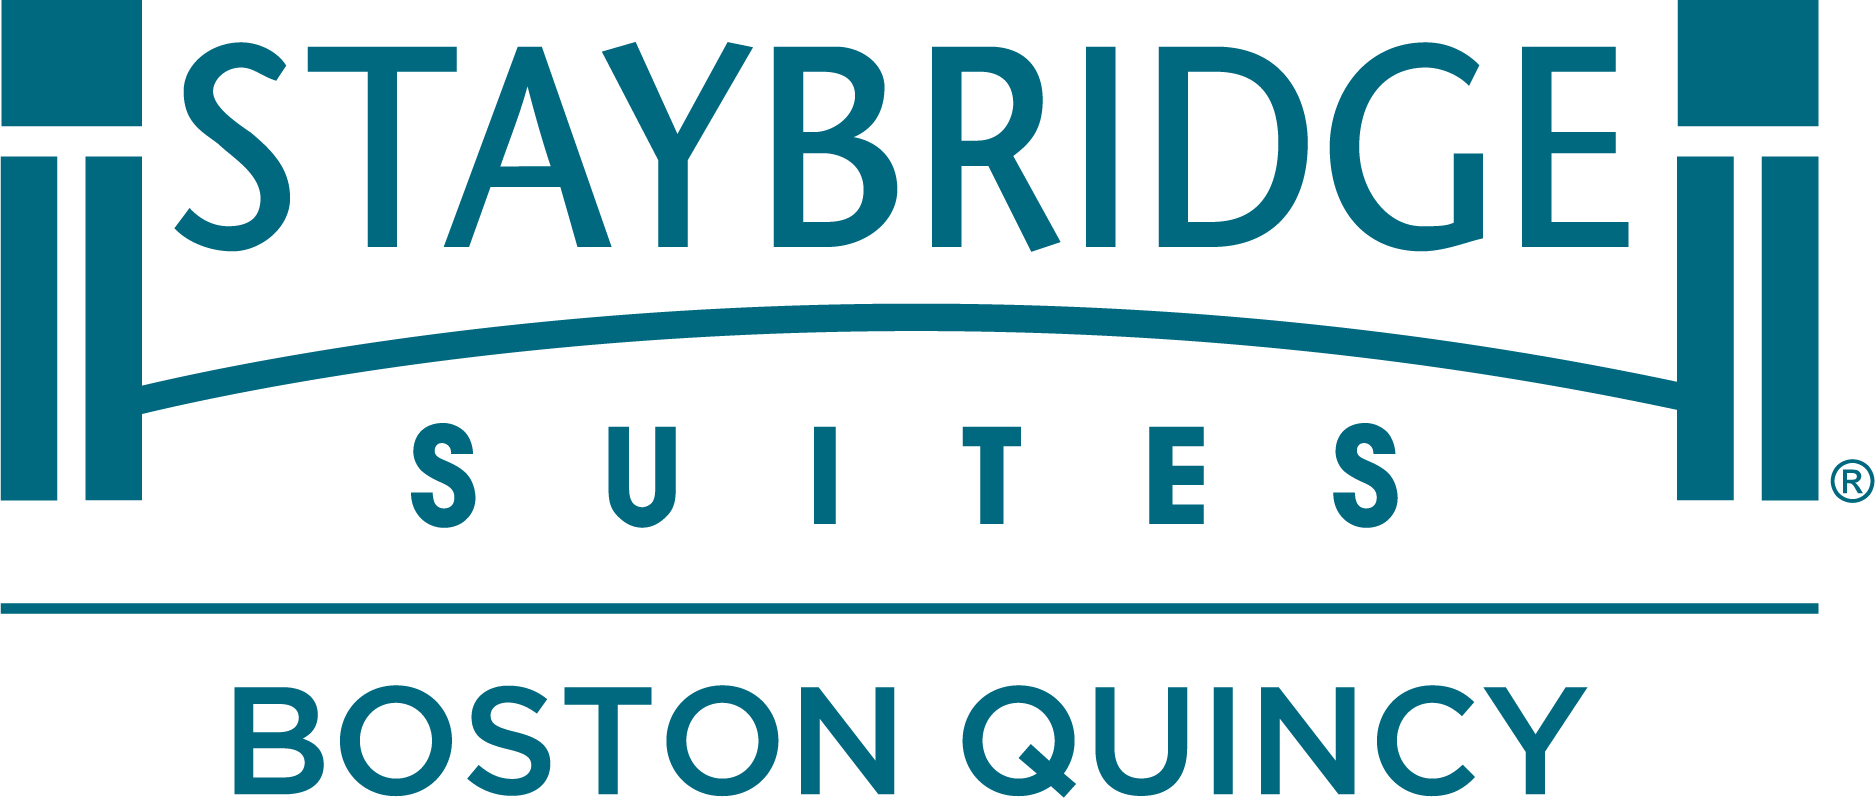 Staybridge_Quincy_logo-color.png